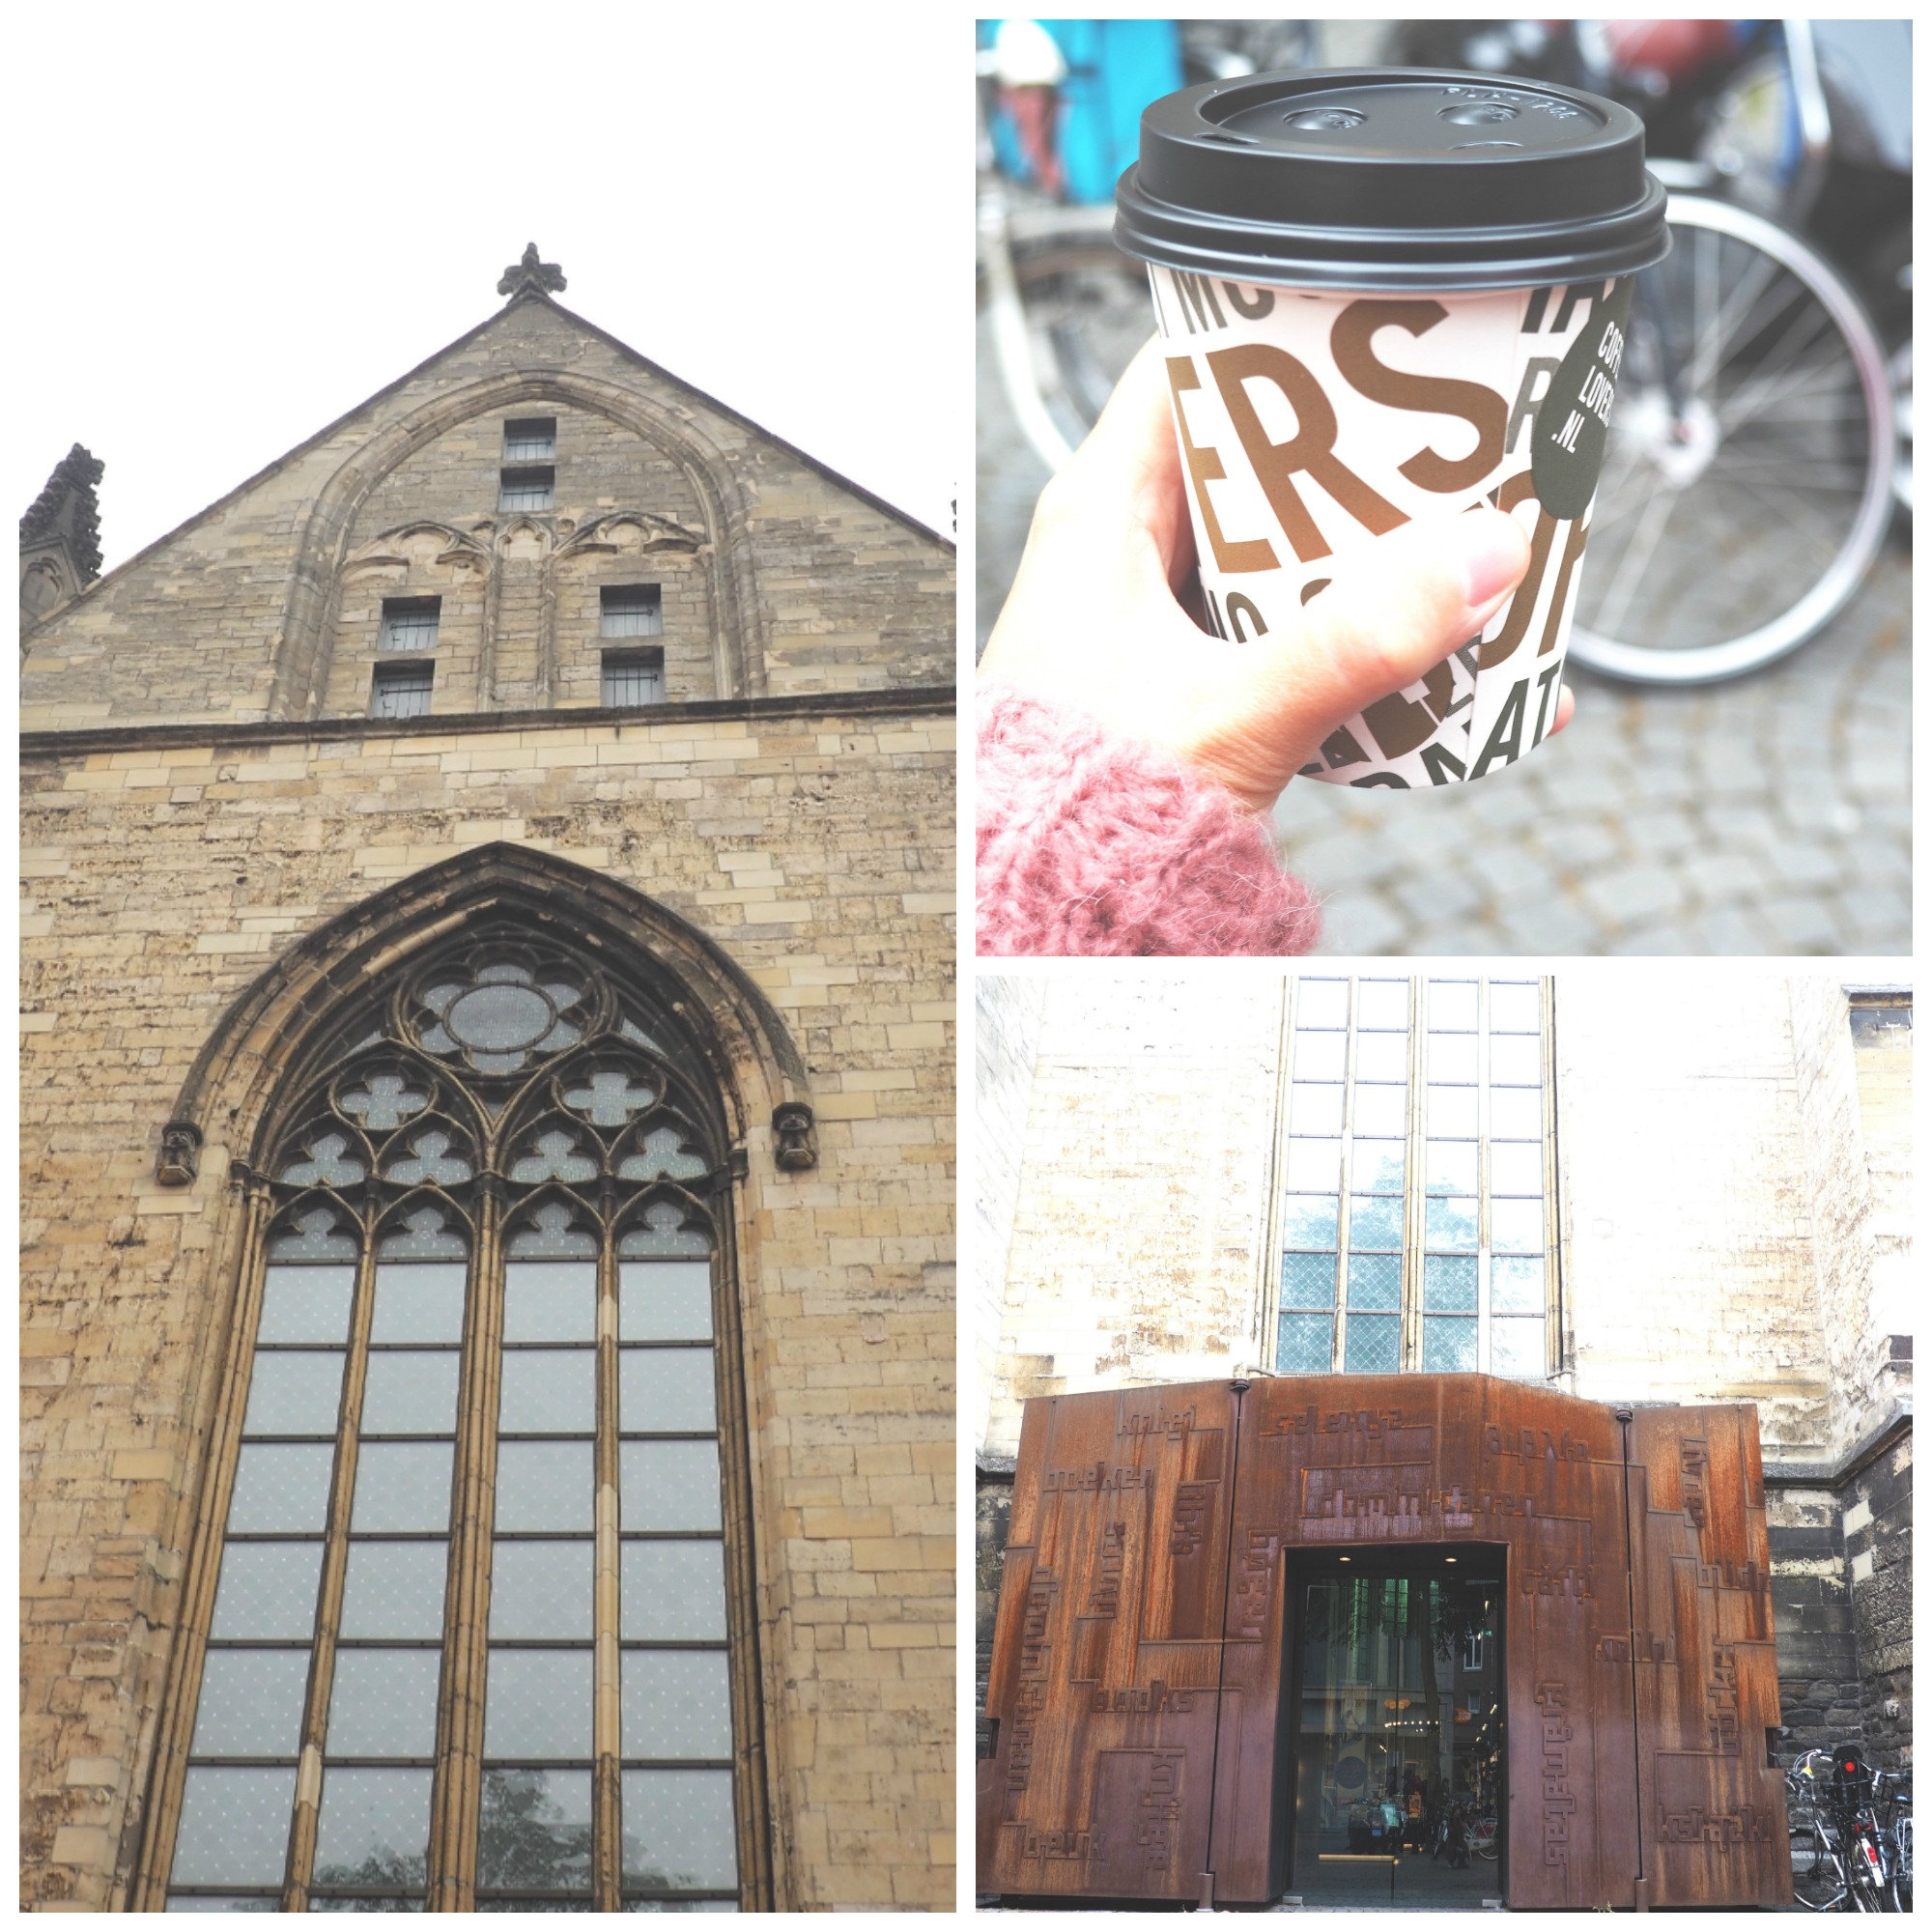 From Liege With Love, Maastricht, City Trip, Bonnes adresses